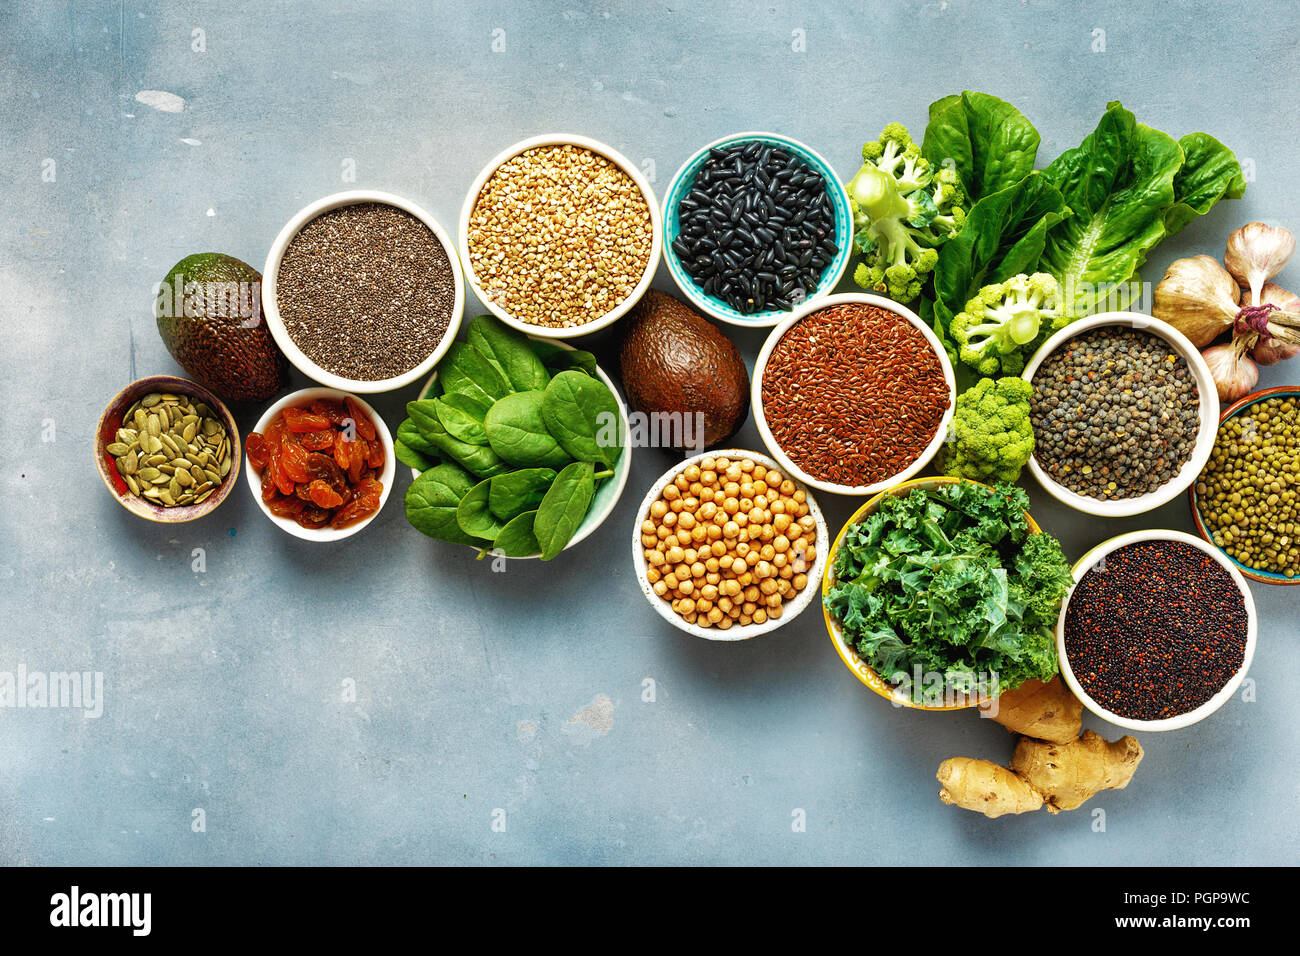 Vegetarian healthy food concept. Set raw seeds, cereals, beans, superfoods and green vegetables on blue stone background top view flat lay - Stock Image